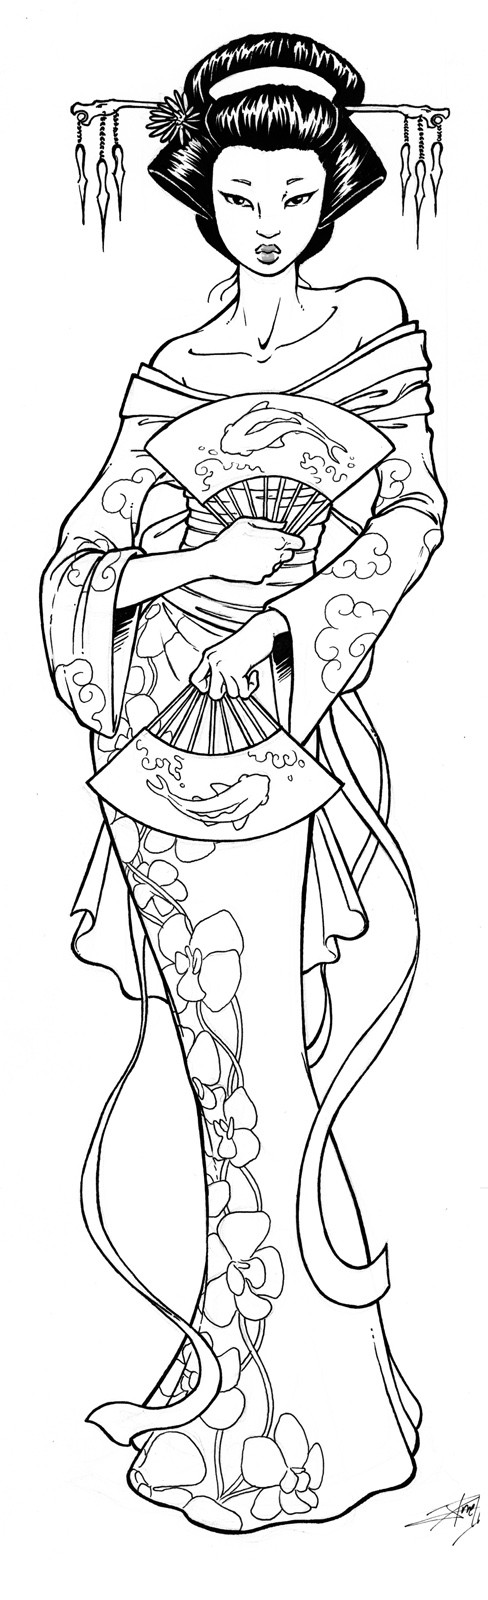 free japanese art coloring pages - photo#29